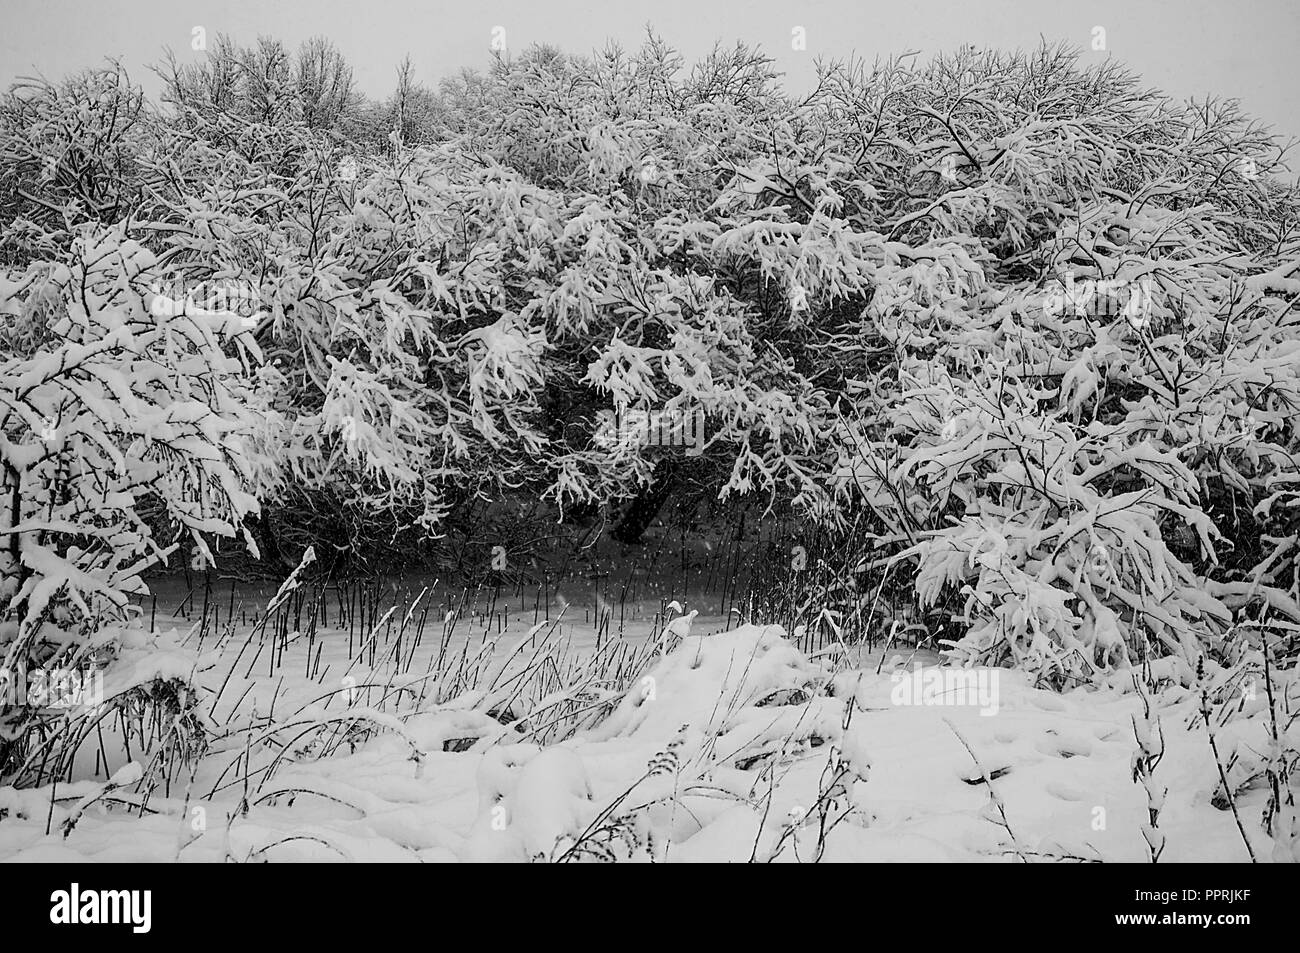 Snow-covered trees during the first snow on a winter day - Stock Image